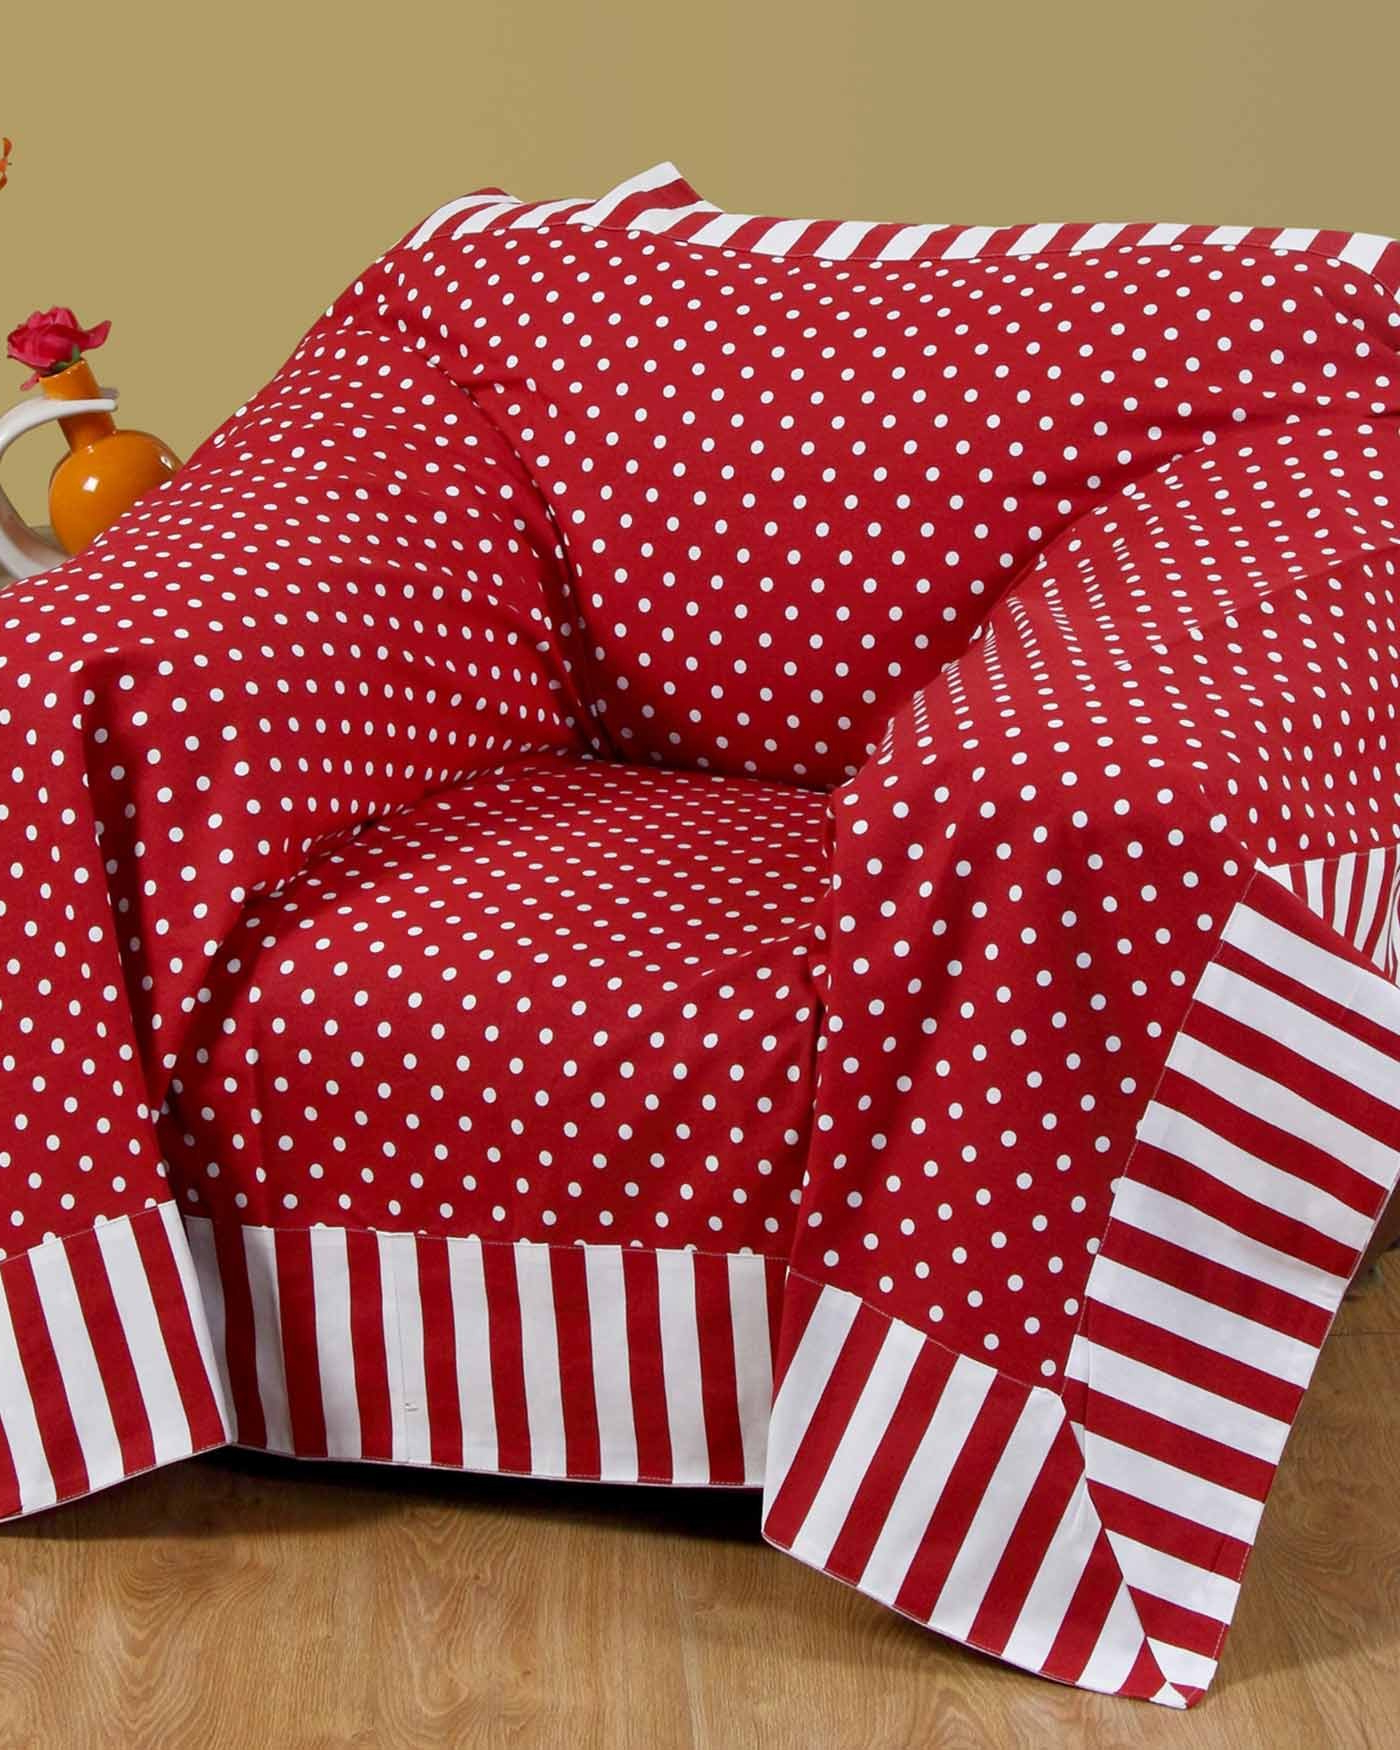 Most Recently Released Throws For Sofas And Chairs With Regard To Cotton Red Polka Dots And Stripes Sofa Throw – Homescapes (View 15 of 20)